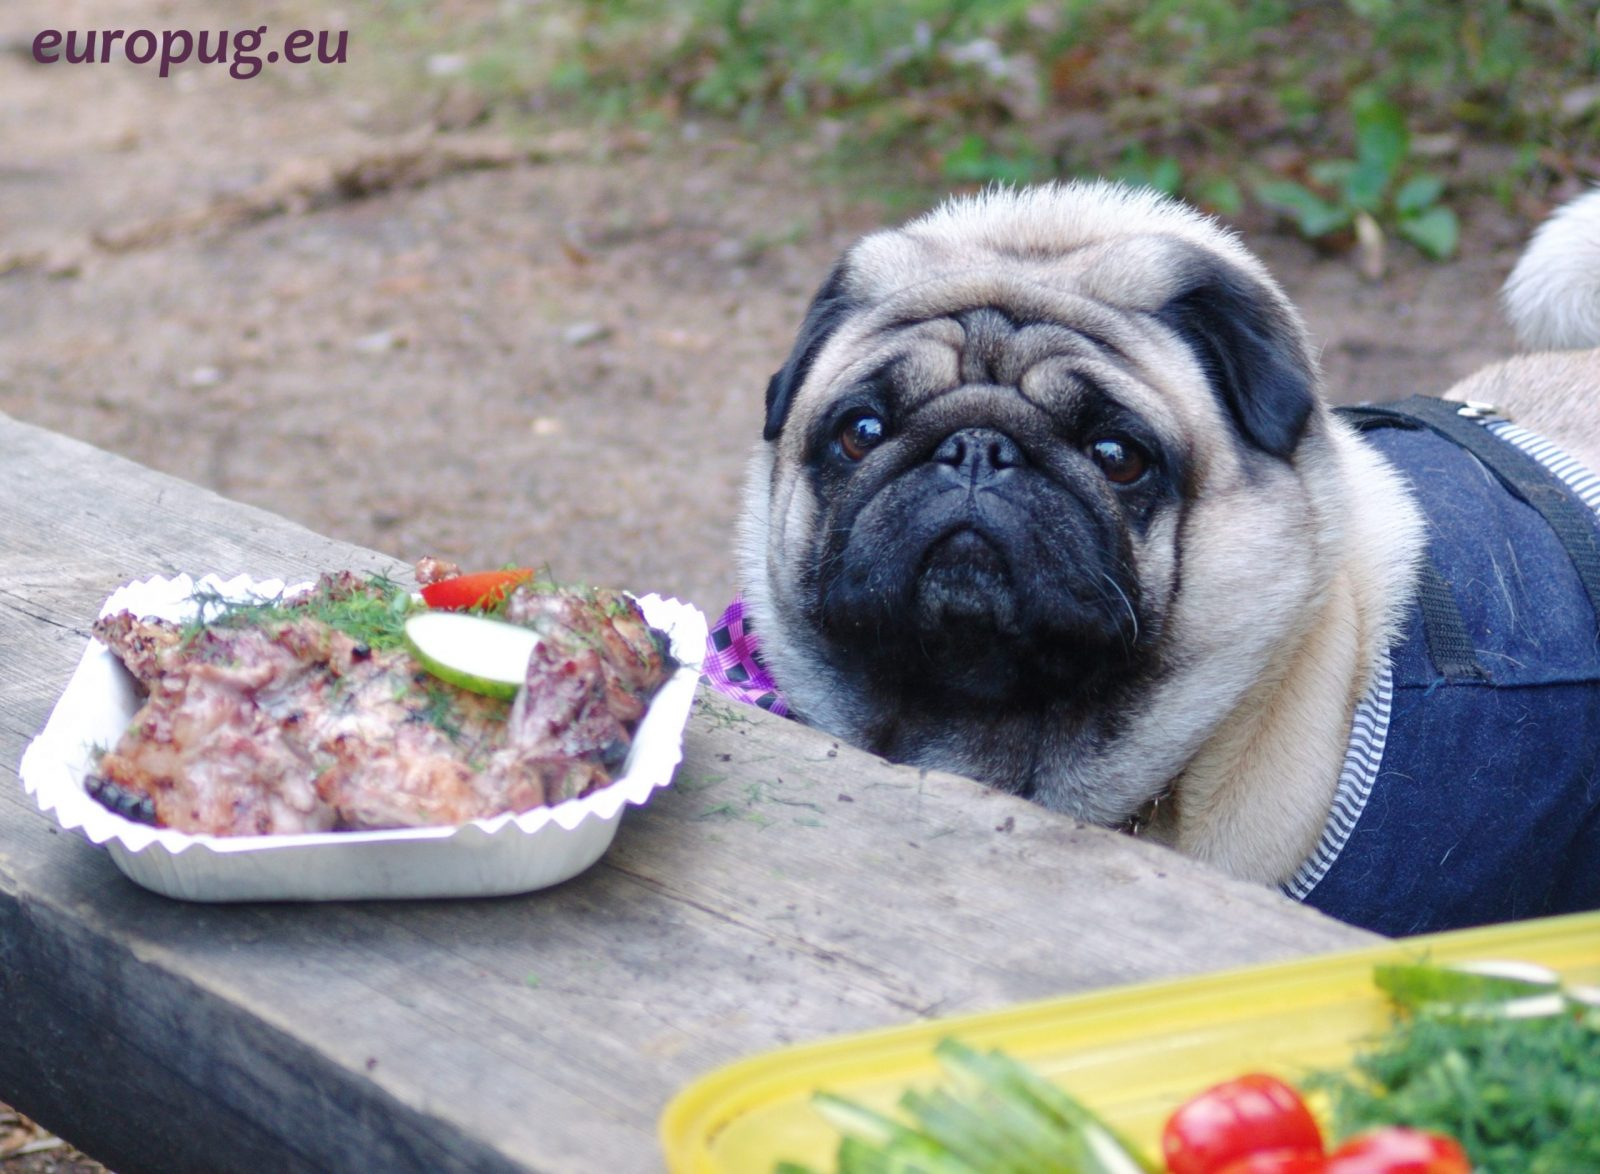 Pug and a bench with meat